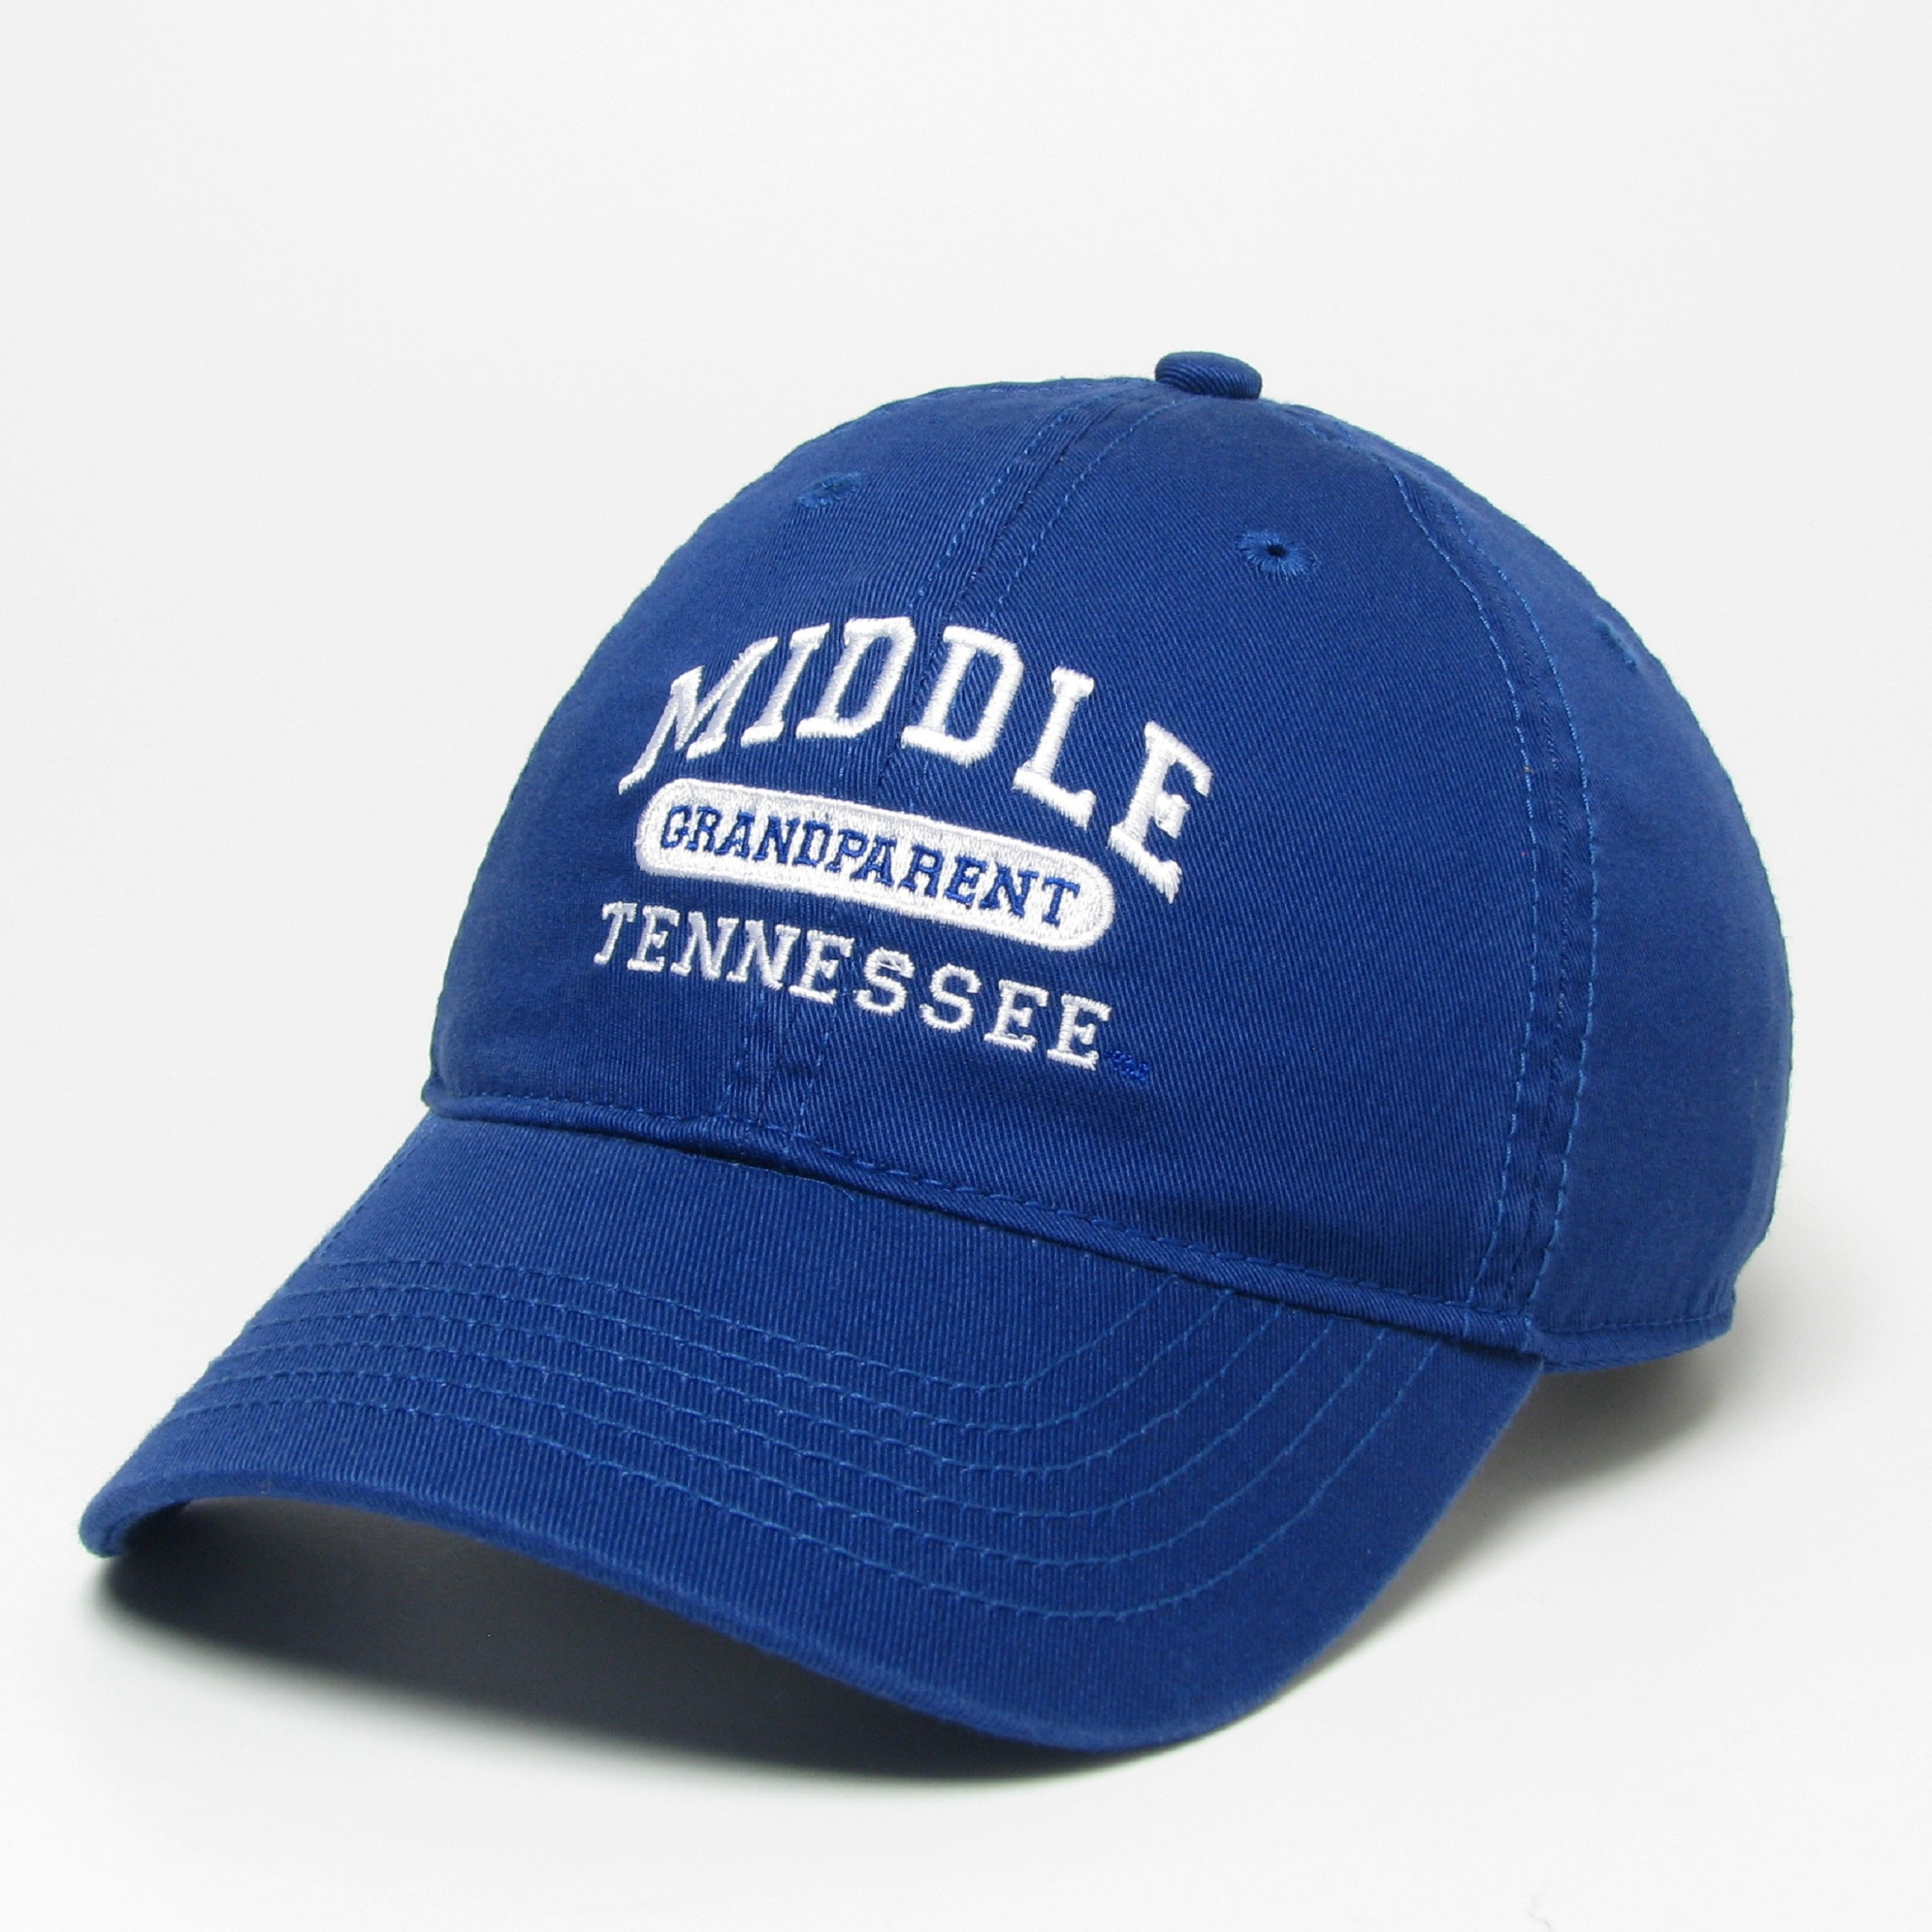 Middle Tennessee Grandparent Relaxed Twill Hat